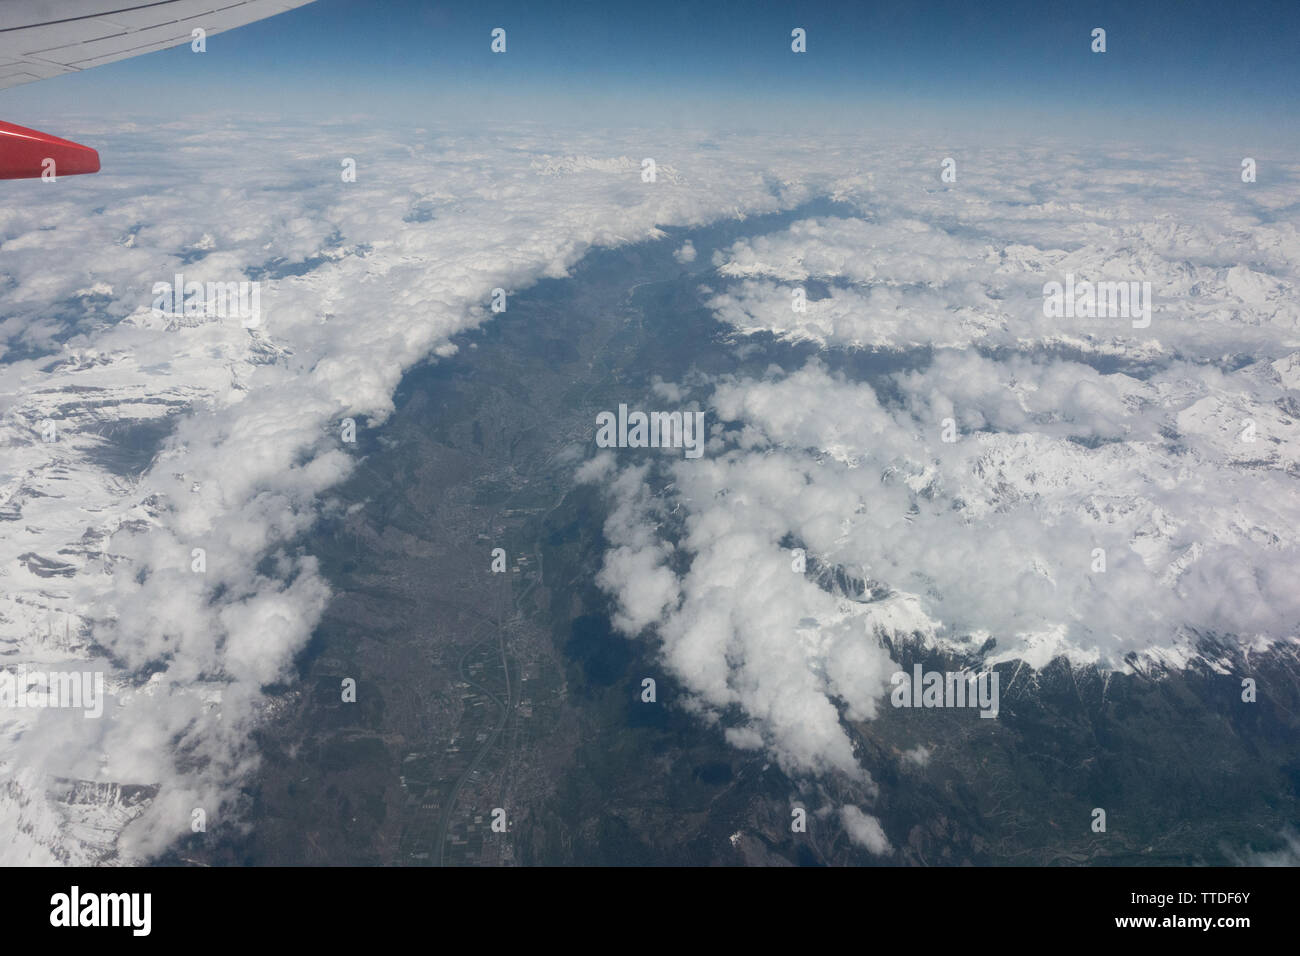 View from a cabin window of a Boeing 737 above the clouds Stock Photo